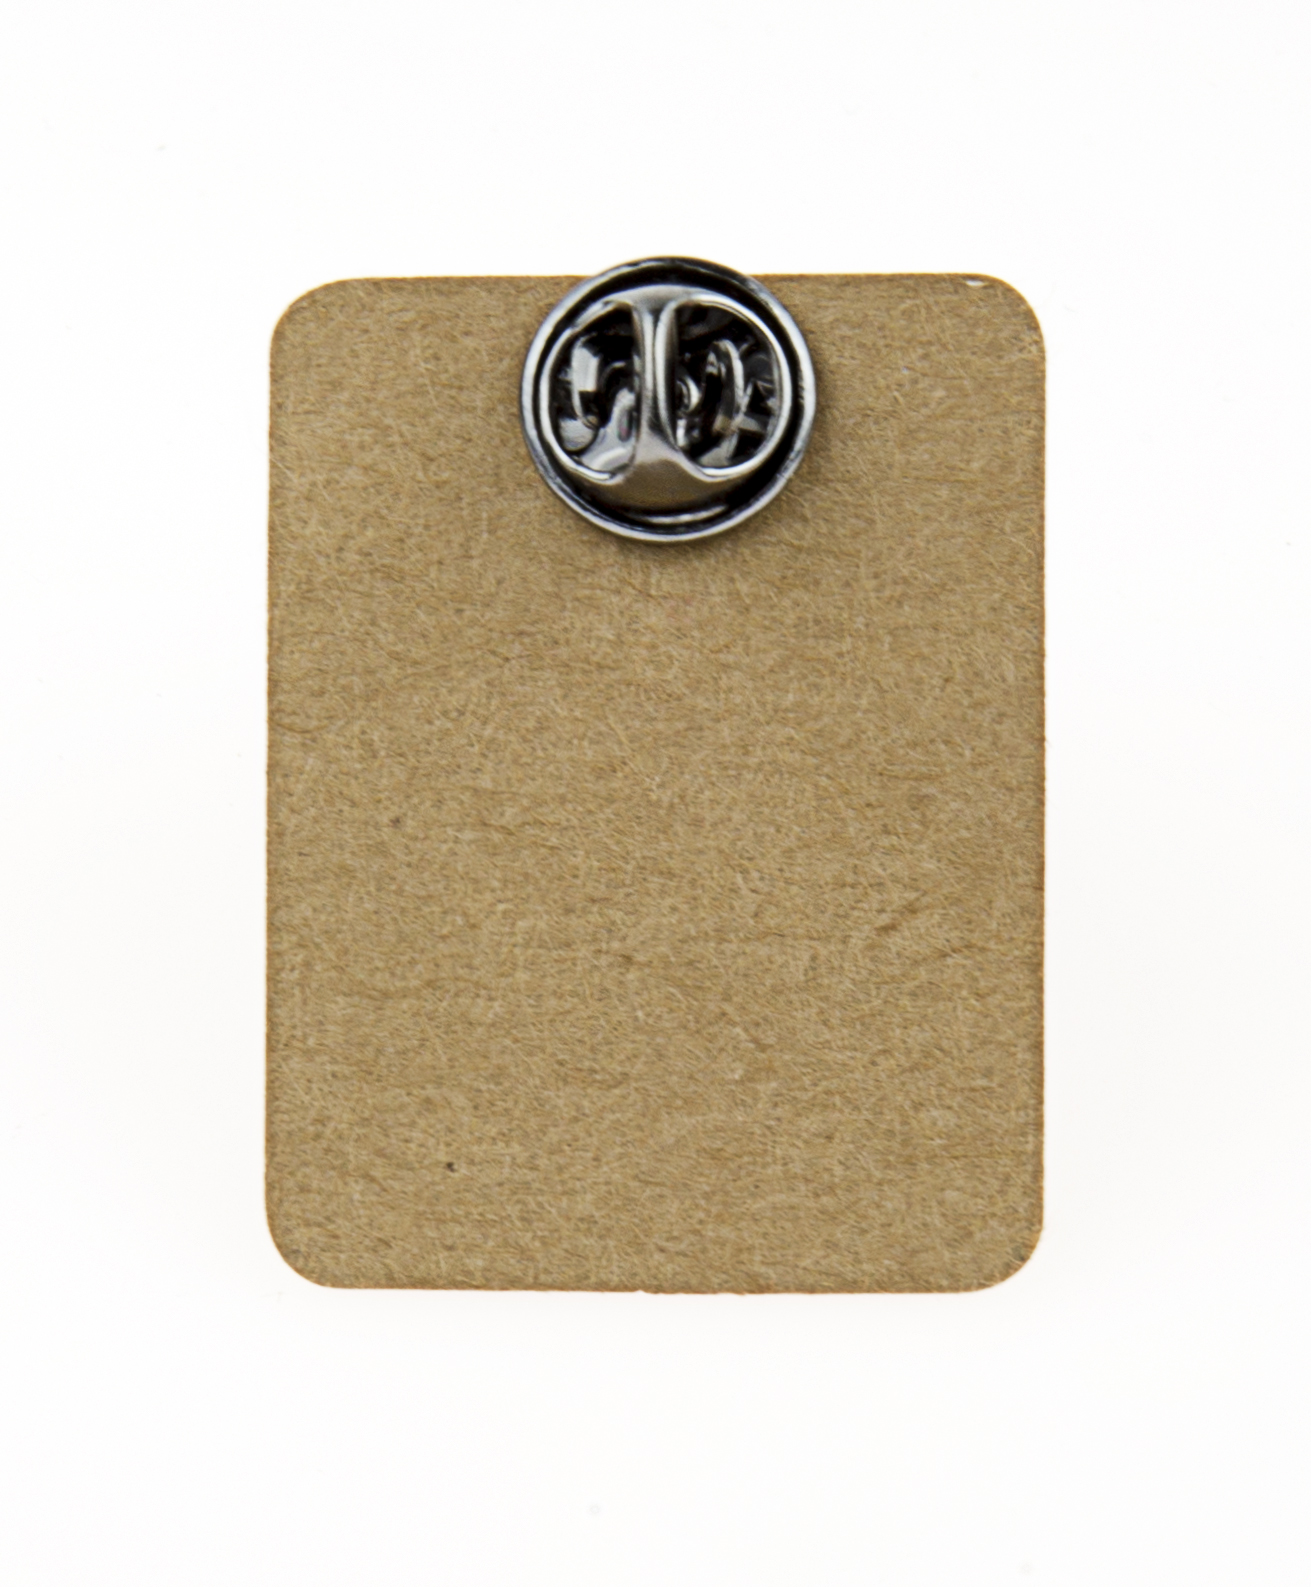 Metal Polaroid Camera Enamel Pin Badge